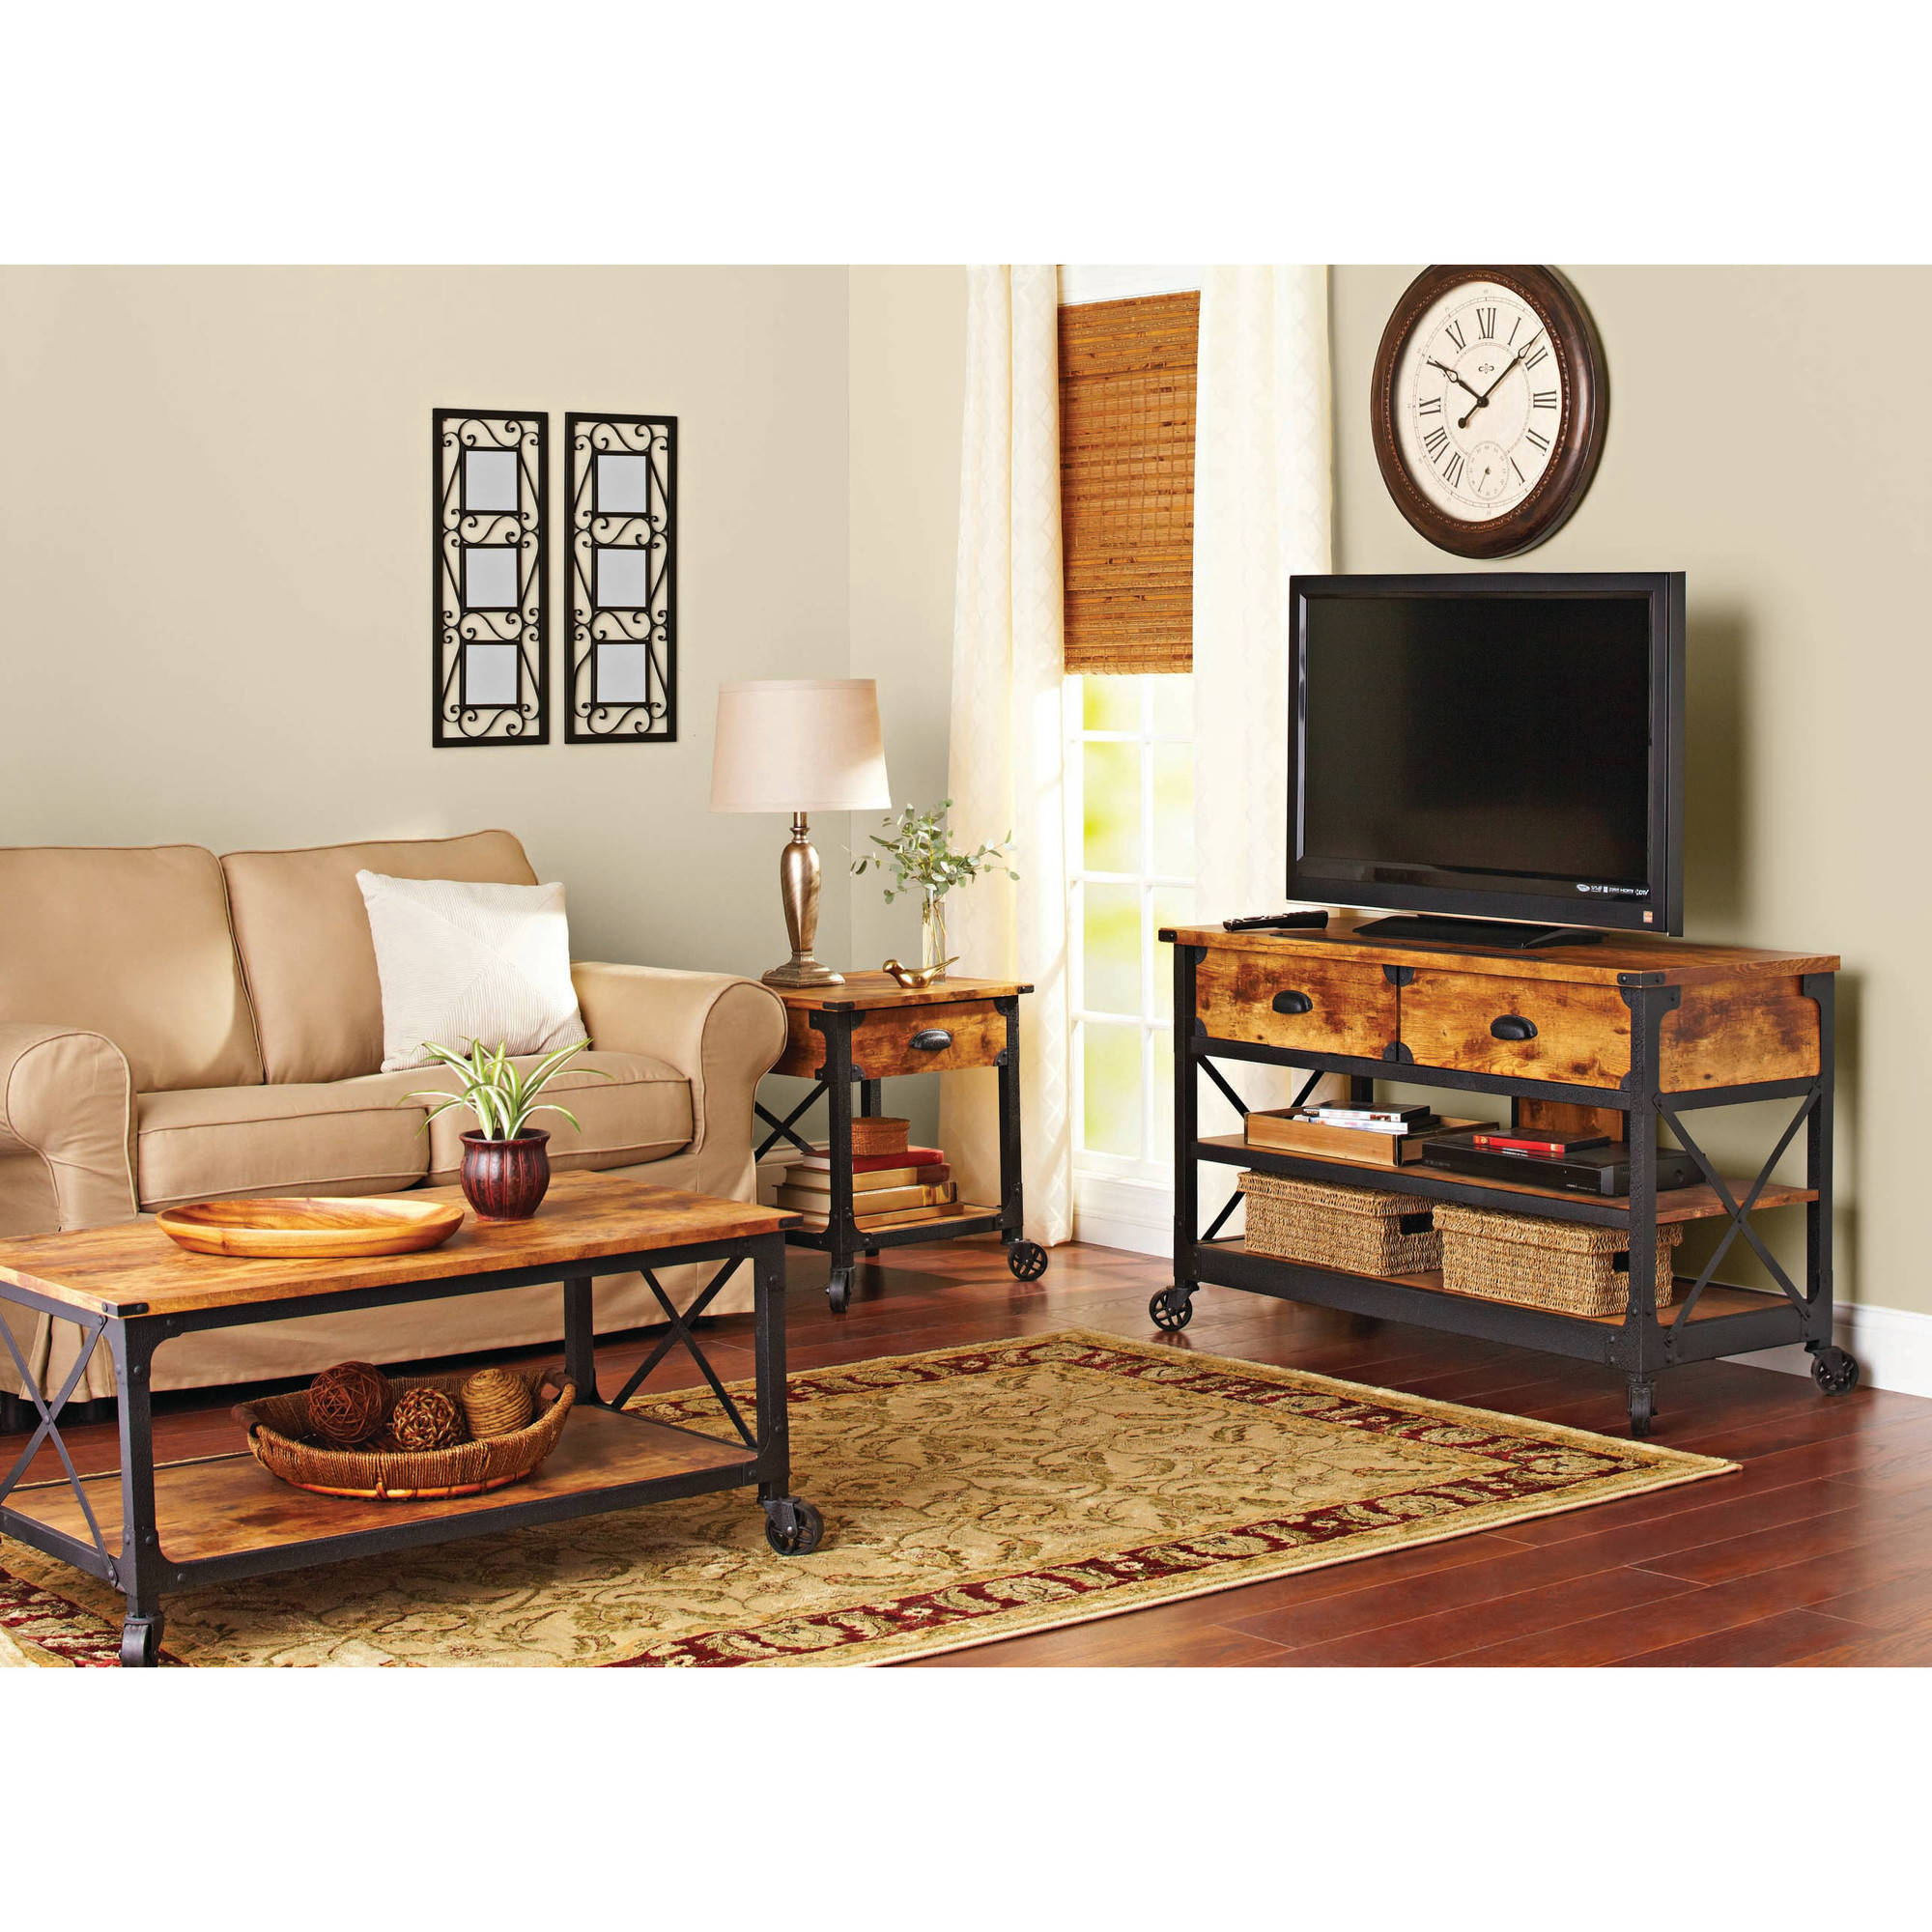 Better Homes And Gardens Rustic Country Living Room Set Walmart intended for Living Room Set With TV